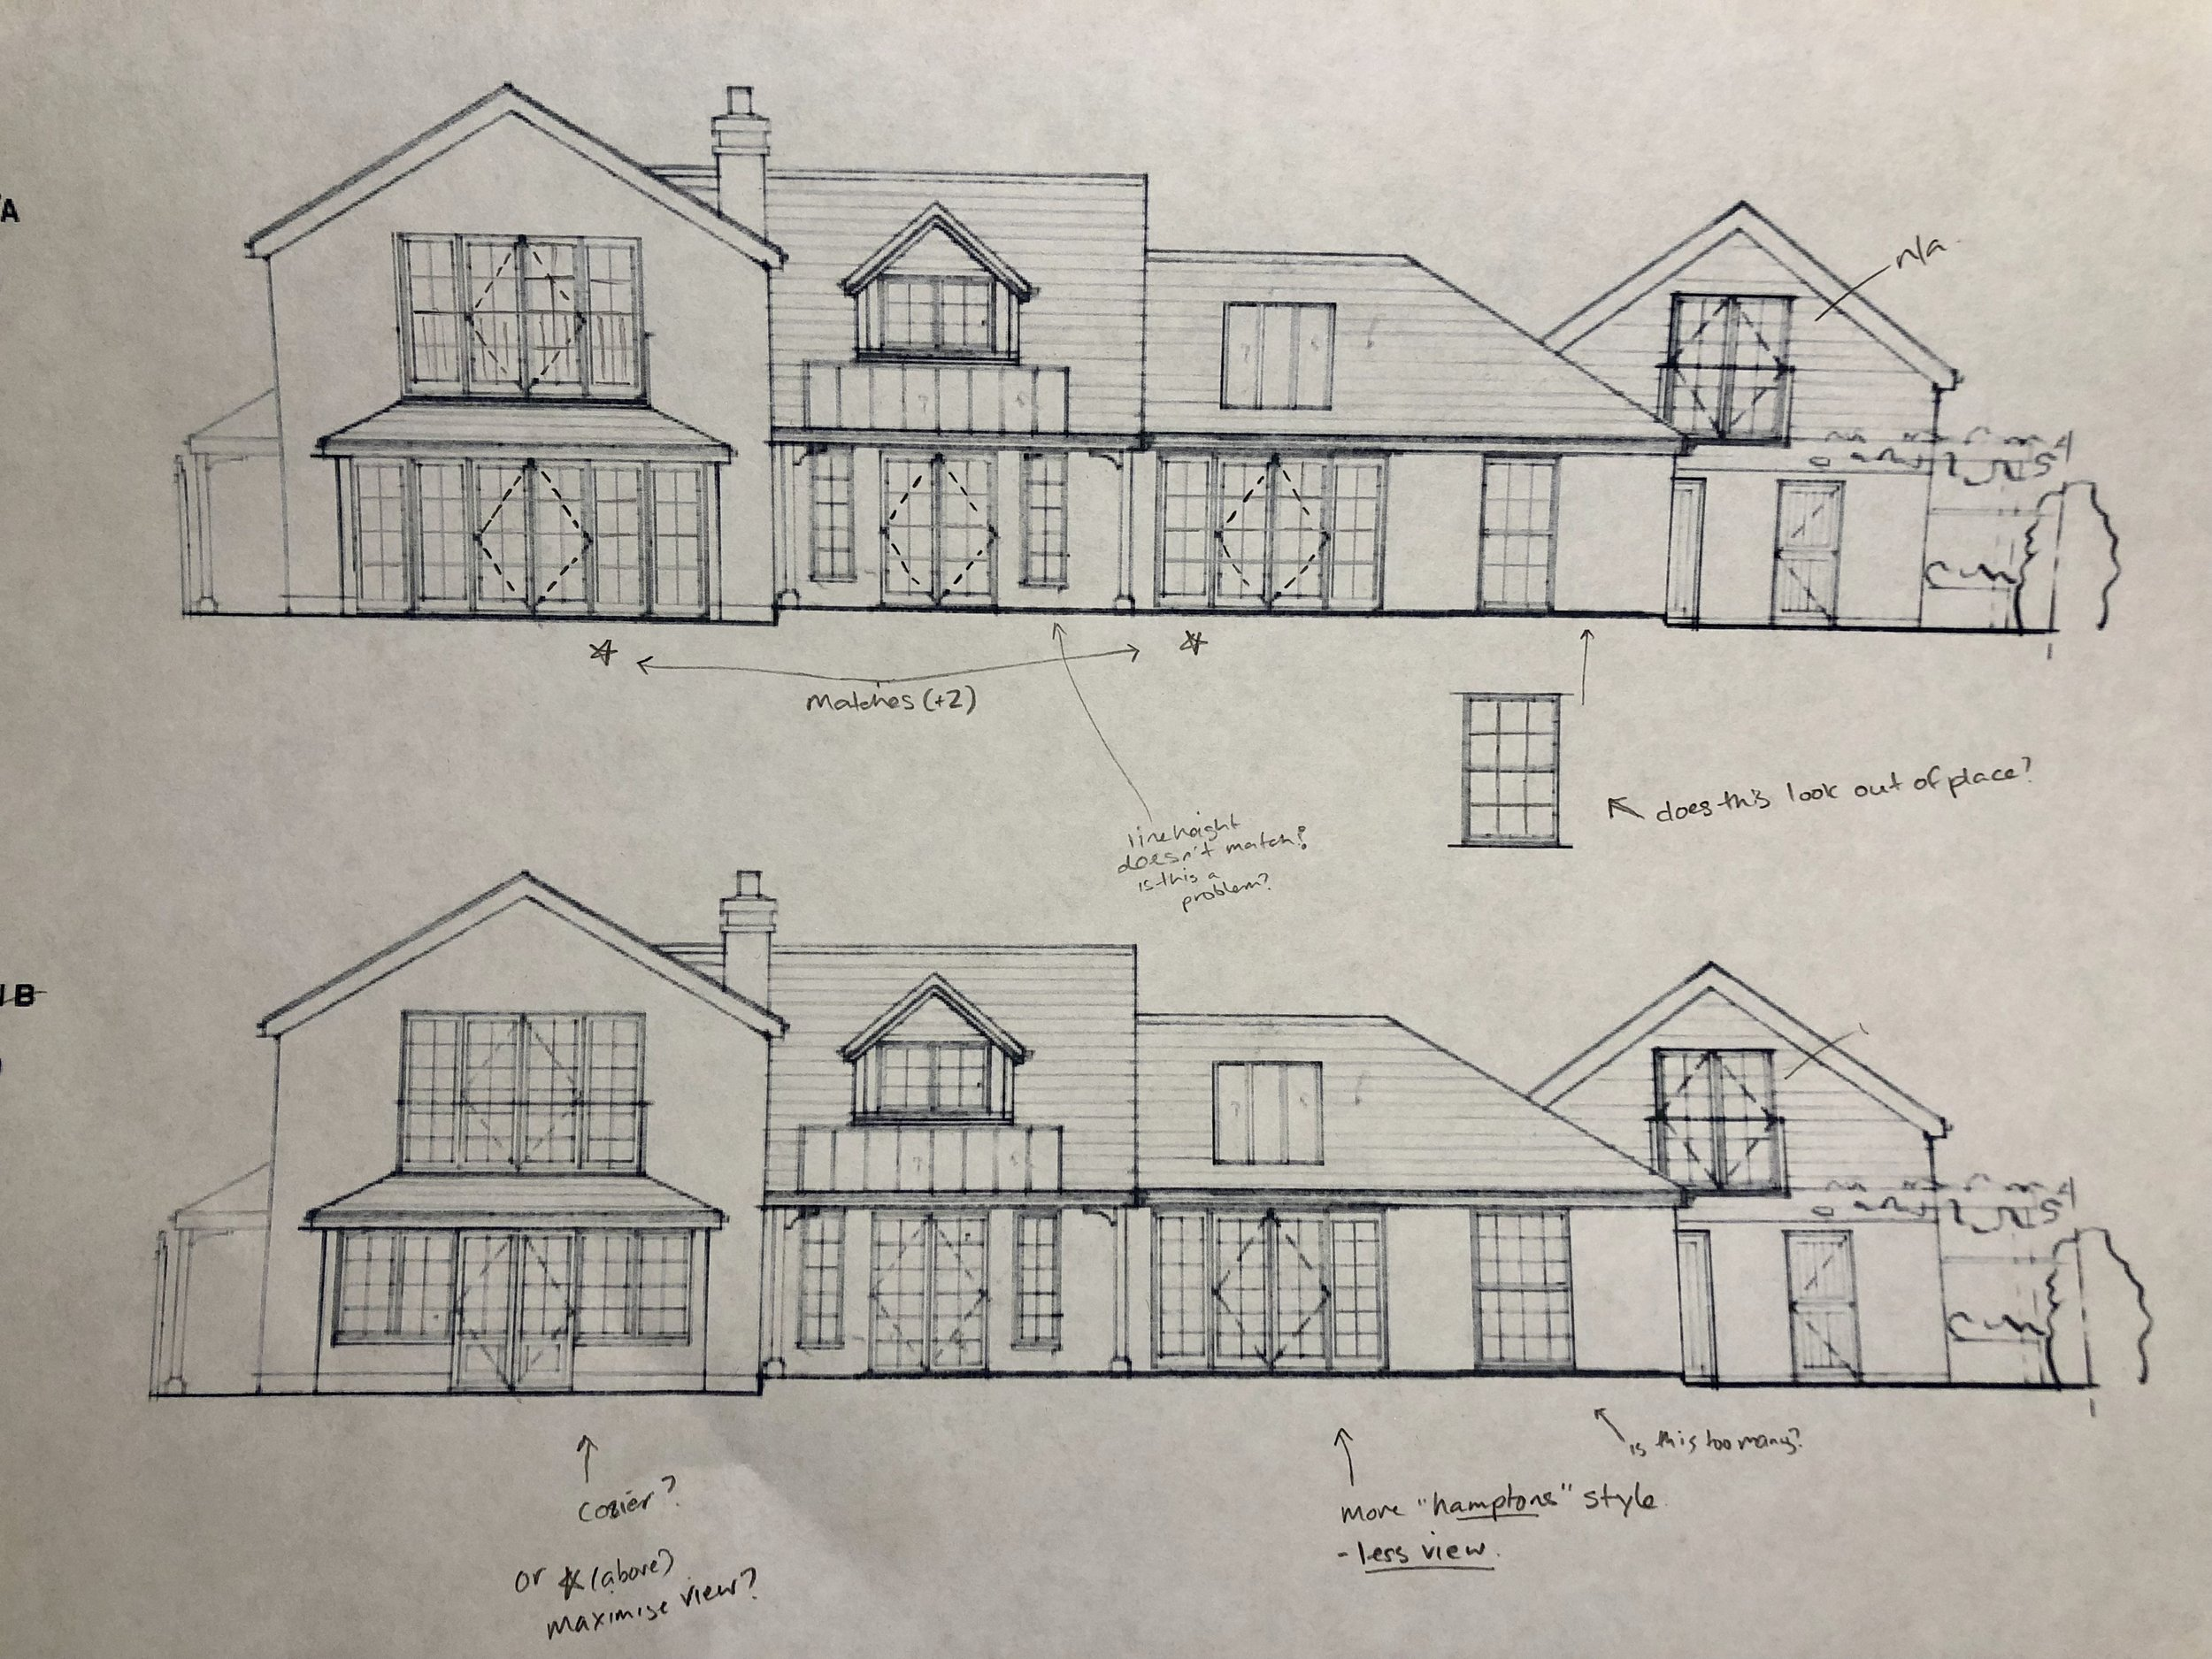 The sketch above shows larger panes and less glazing bars than the sketch below.